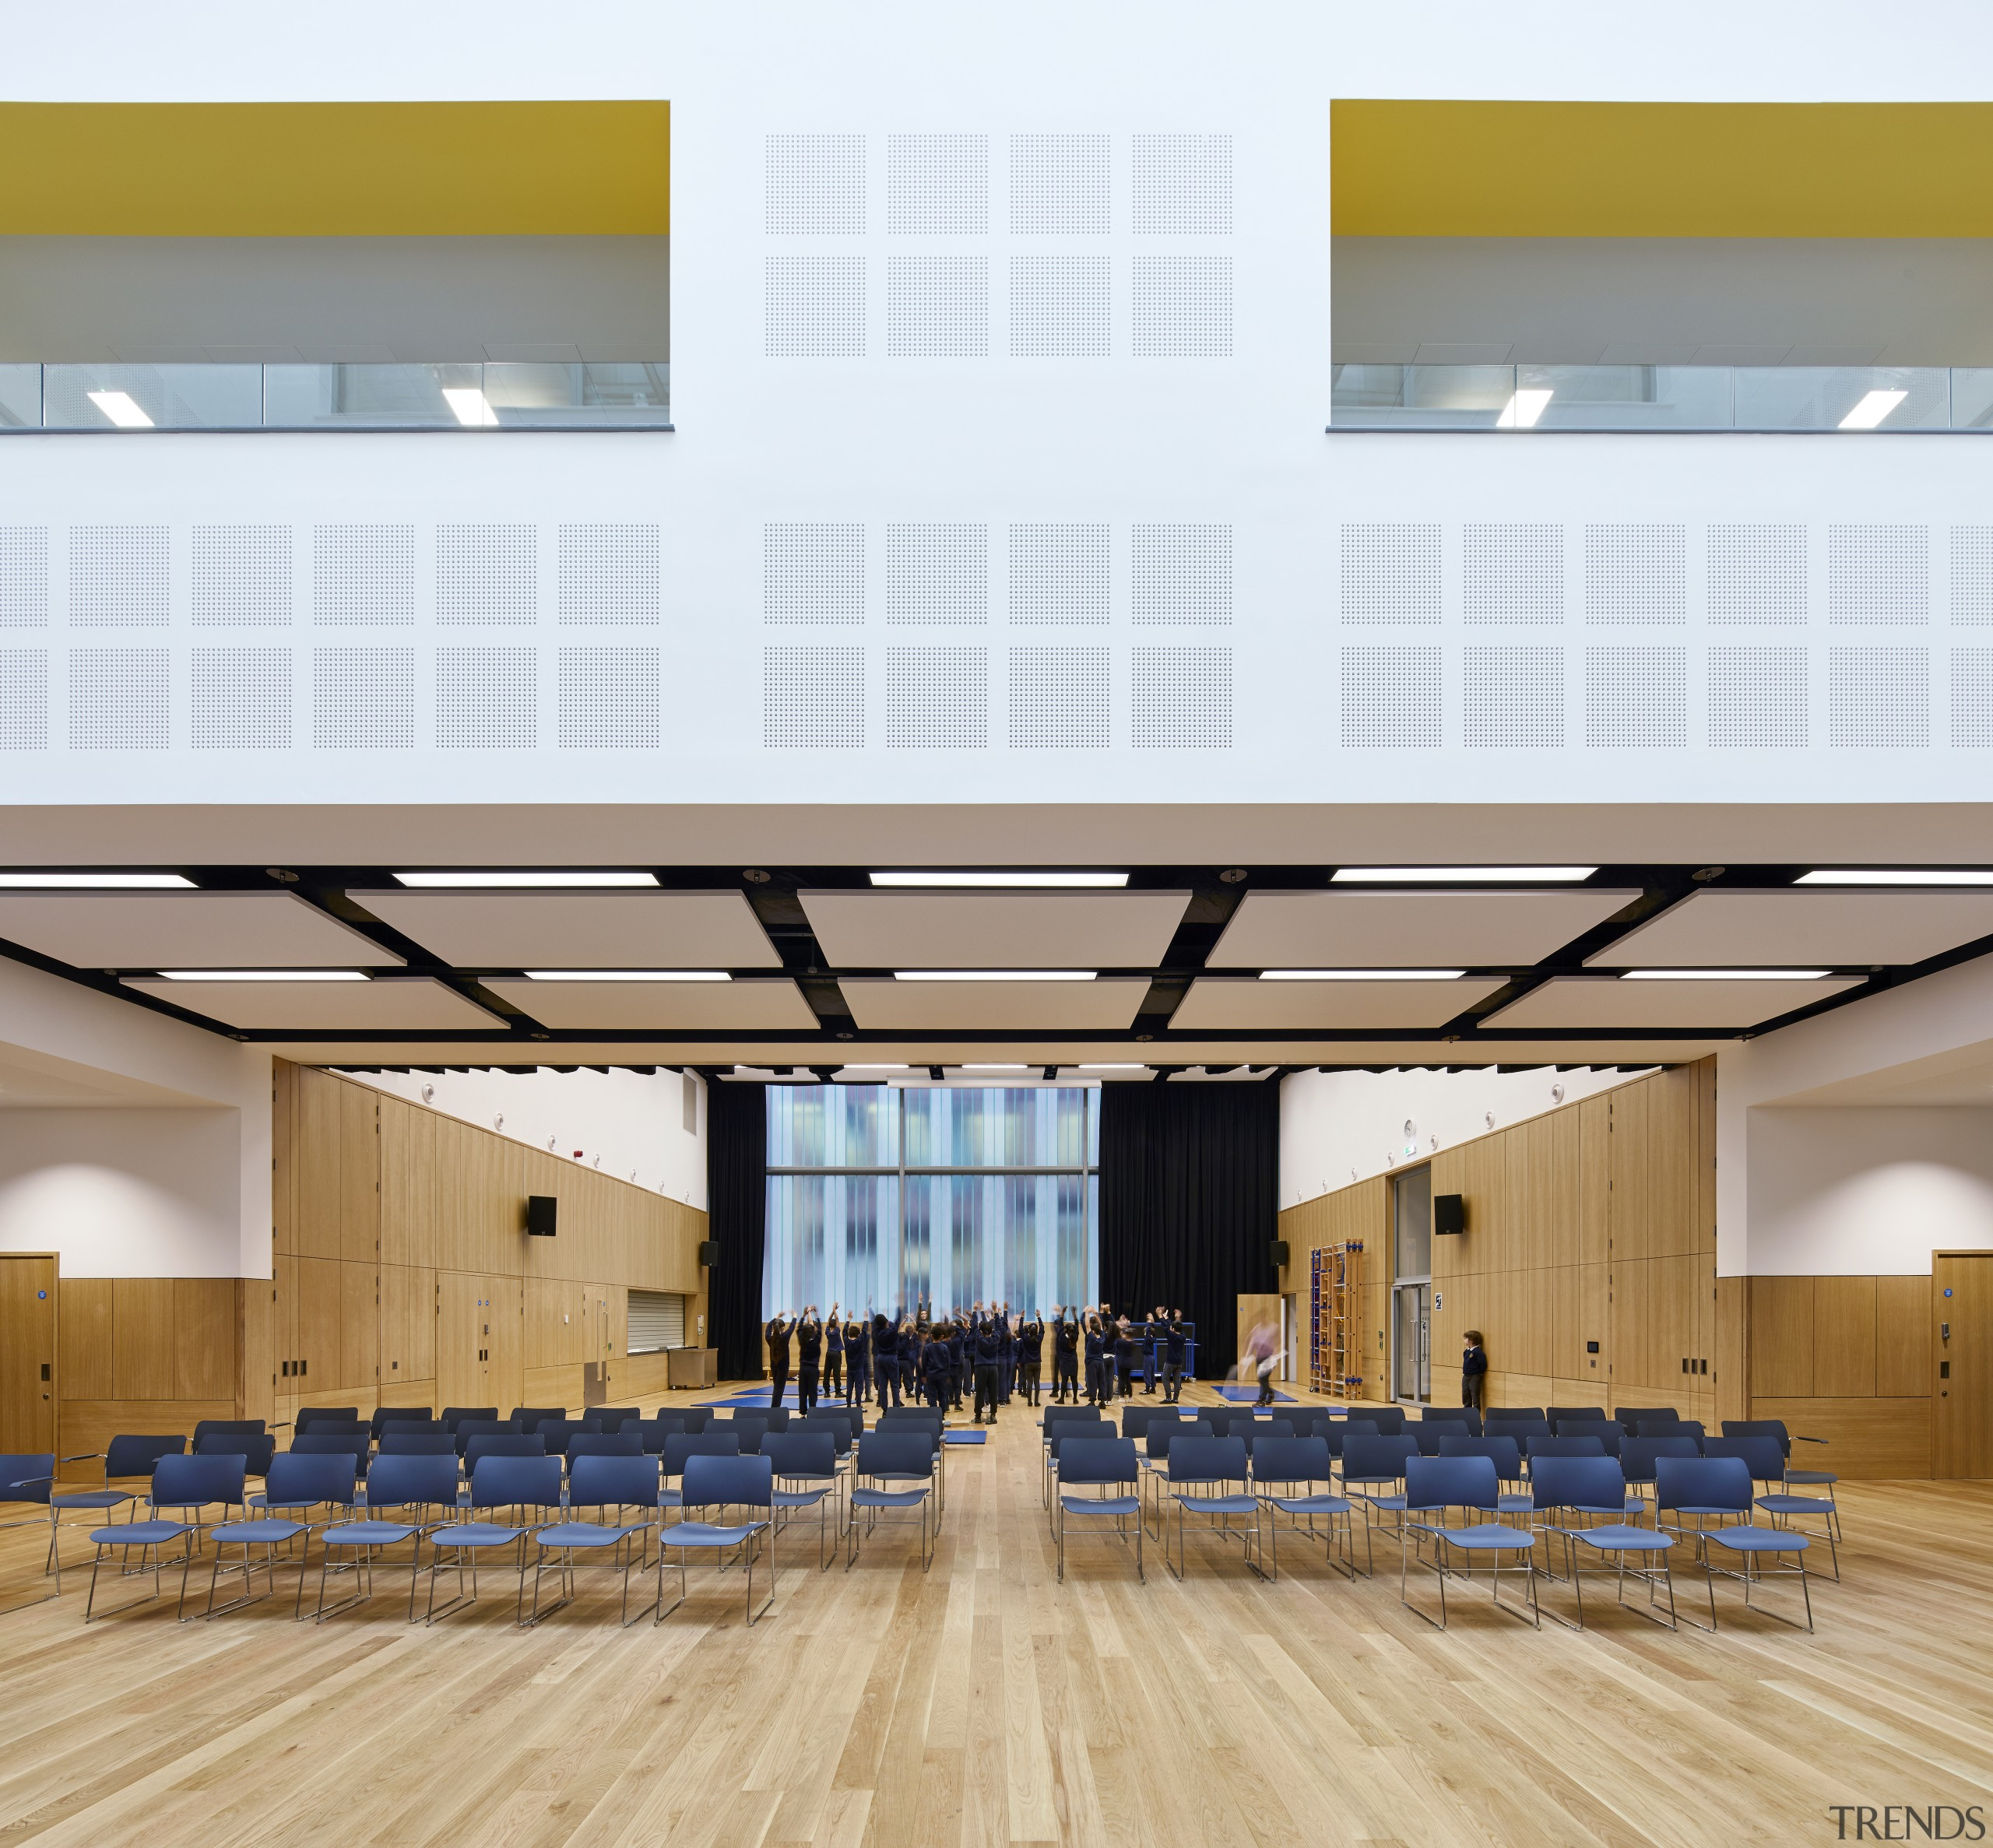 A retractable partition separating the two dynamic hall architecture, auditorium, ceiling, classroom, conference hall, daylighting, function hall, interior design, leisure centre, line, structure, white